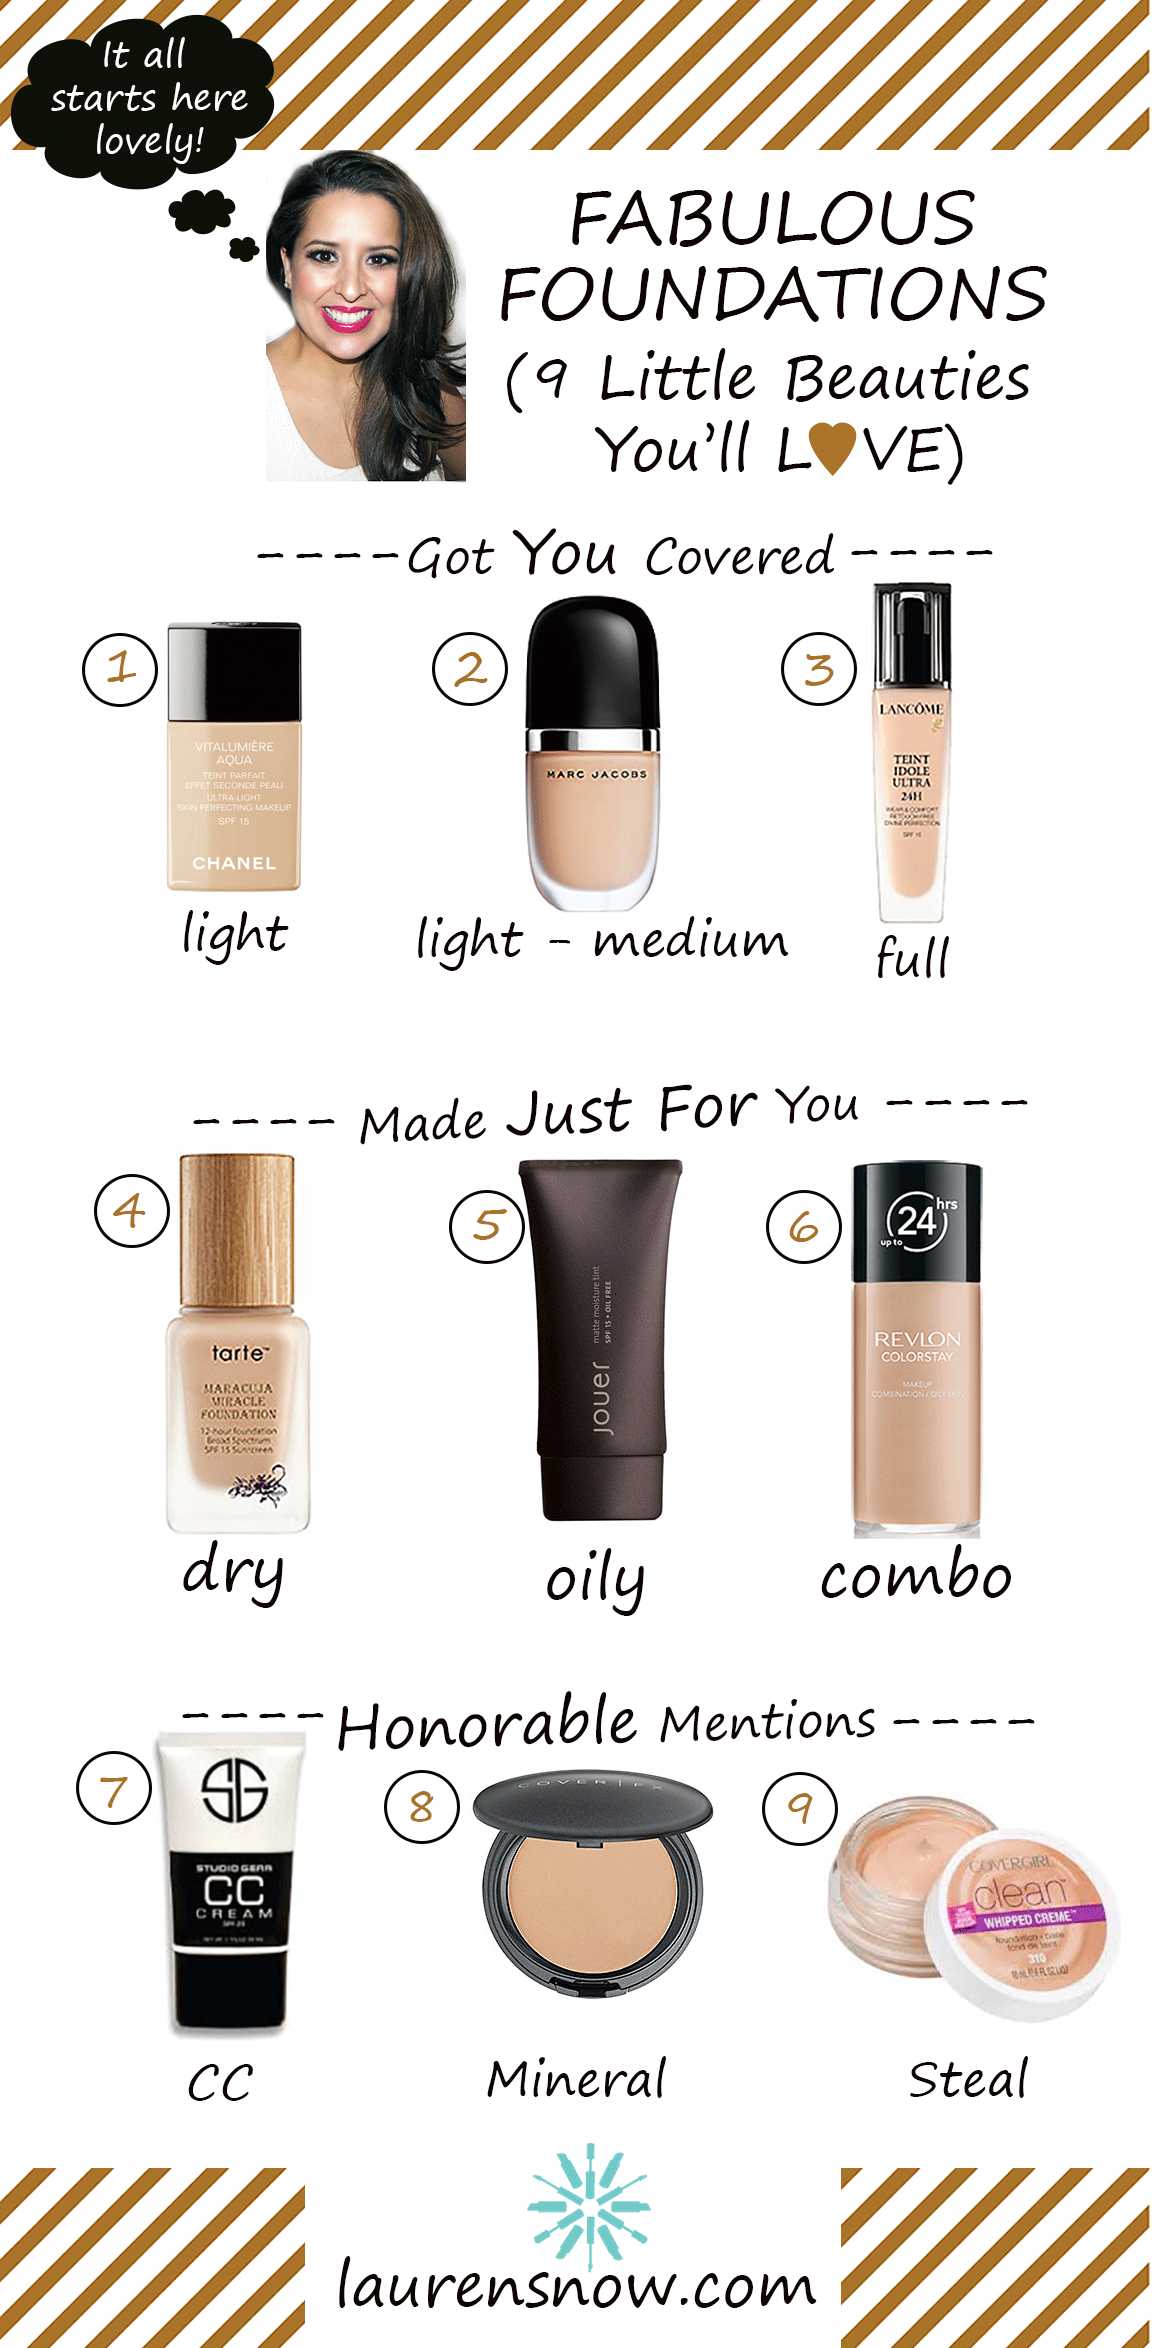 Pin on FOUNDATION / FACE